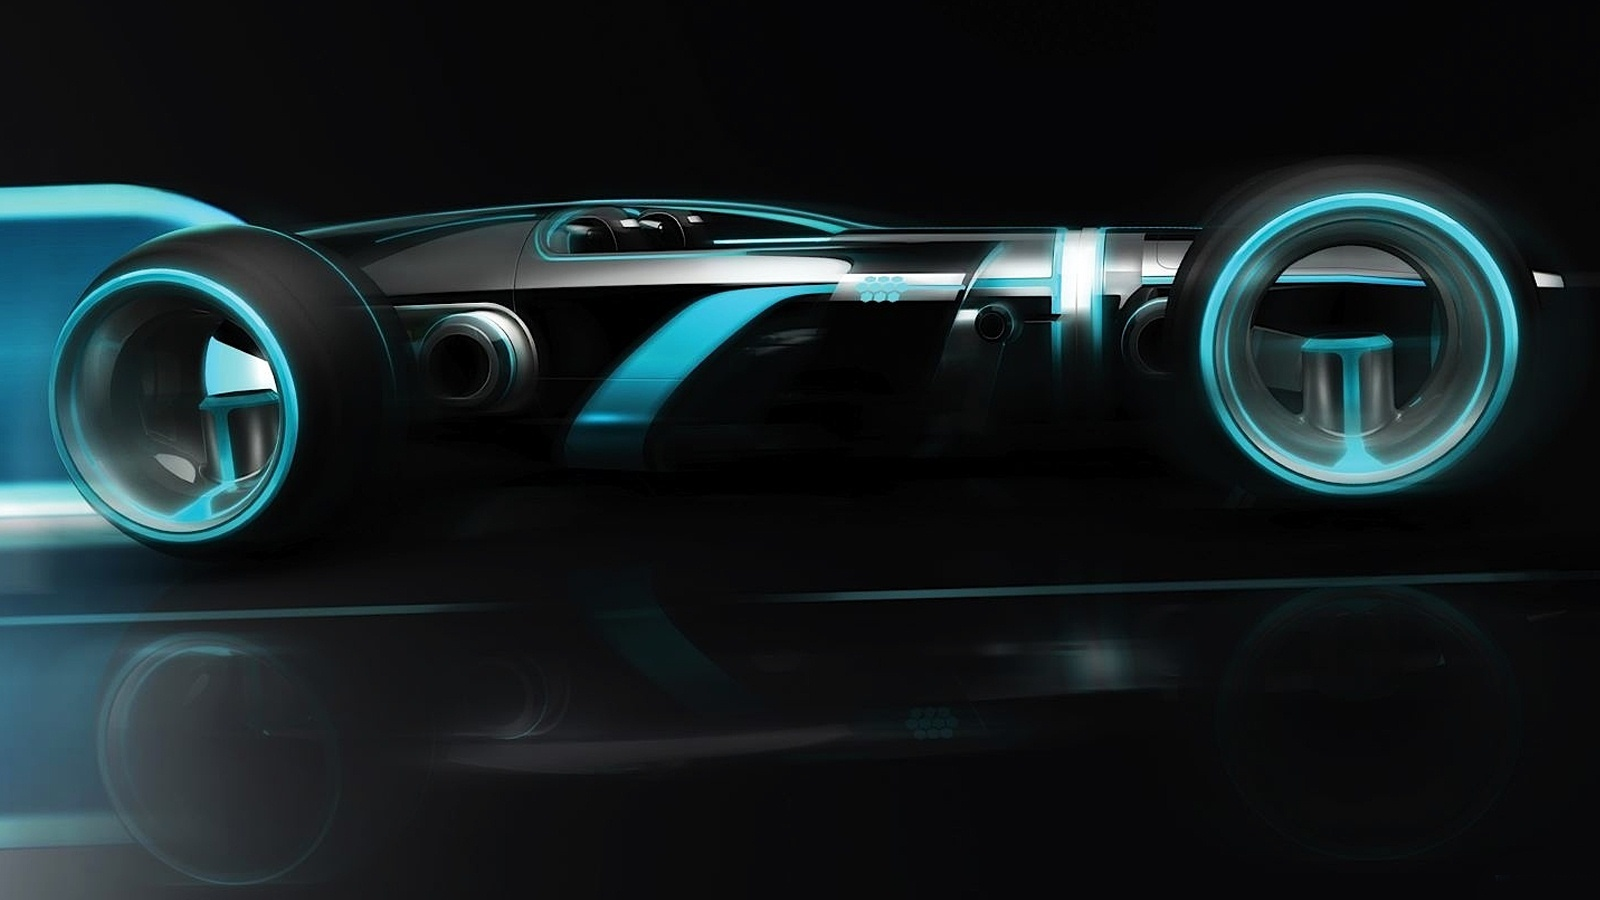 Tron Super Lightcycle Hd Wallpapers Wallpapers Hd